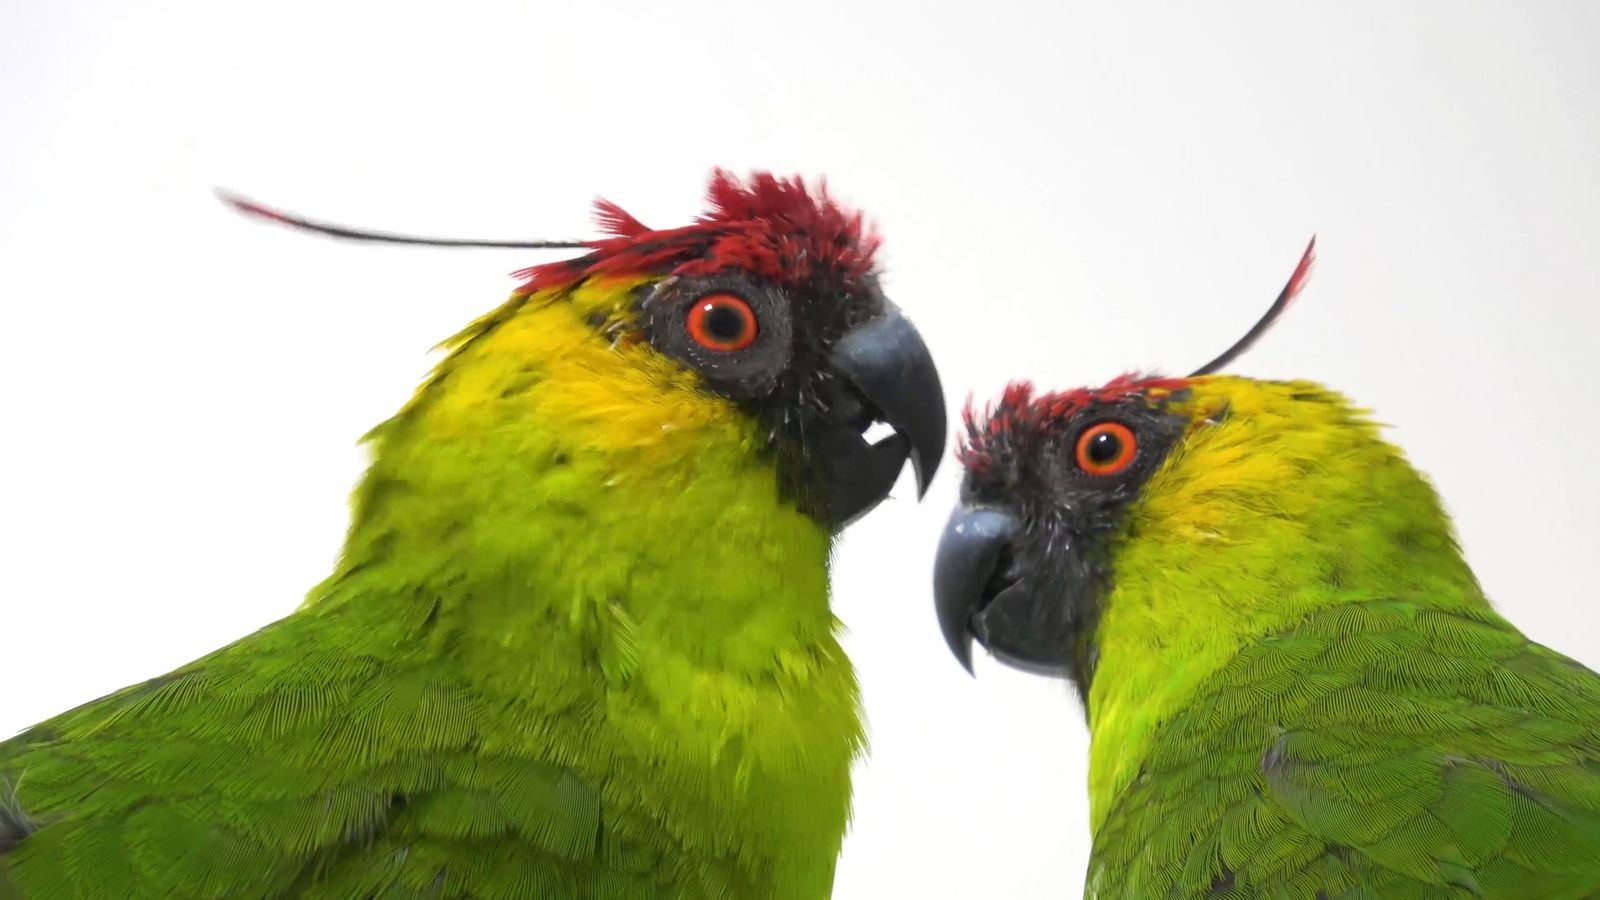 Why Are Parrot Species in Decline?